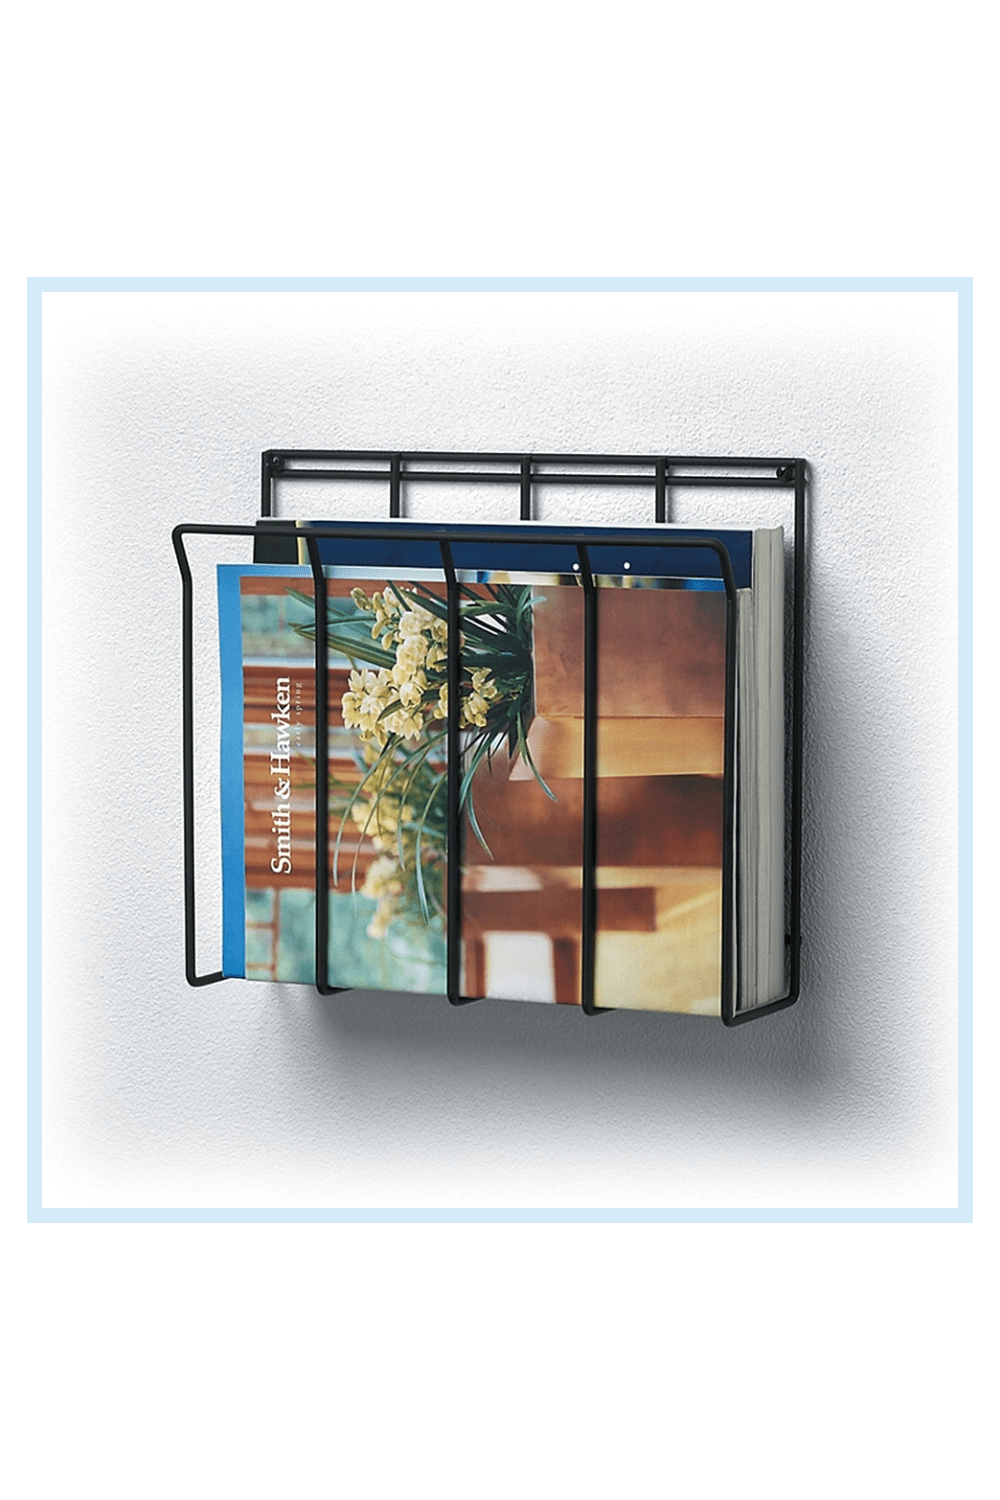 Wall Mount Wire Magazine Rack & Newspaper Caddy Black - Durably constructed out of steel, the Wall Mount Wire Magazine Rack & Newspaper Caddy features a slim, modern design that is perfect for storing standard-sized magazines, newspapers and periodicals.